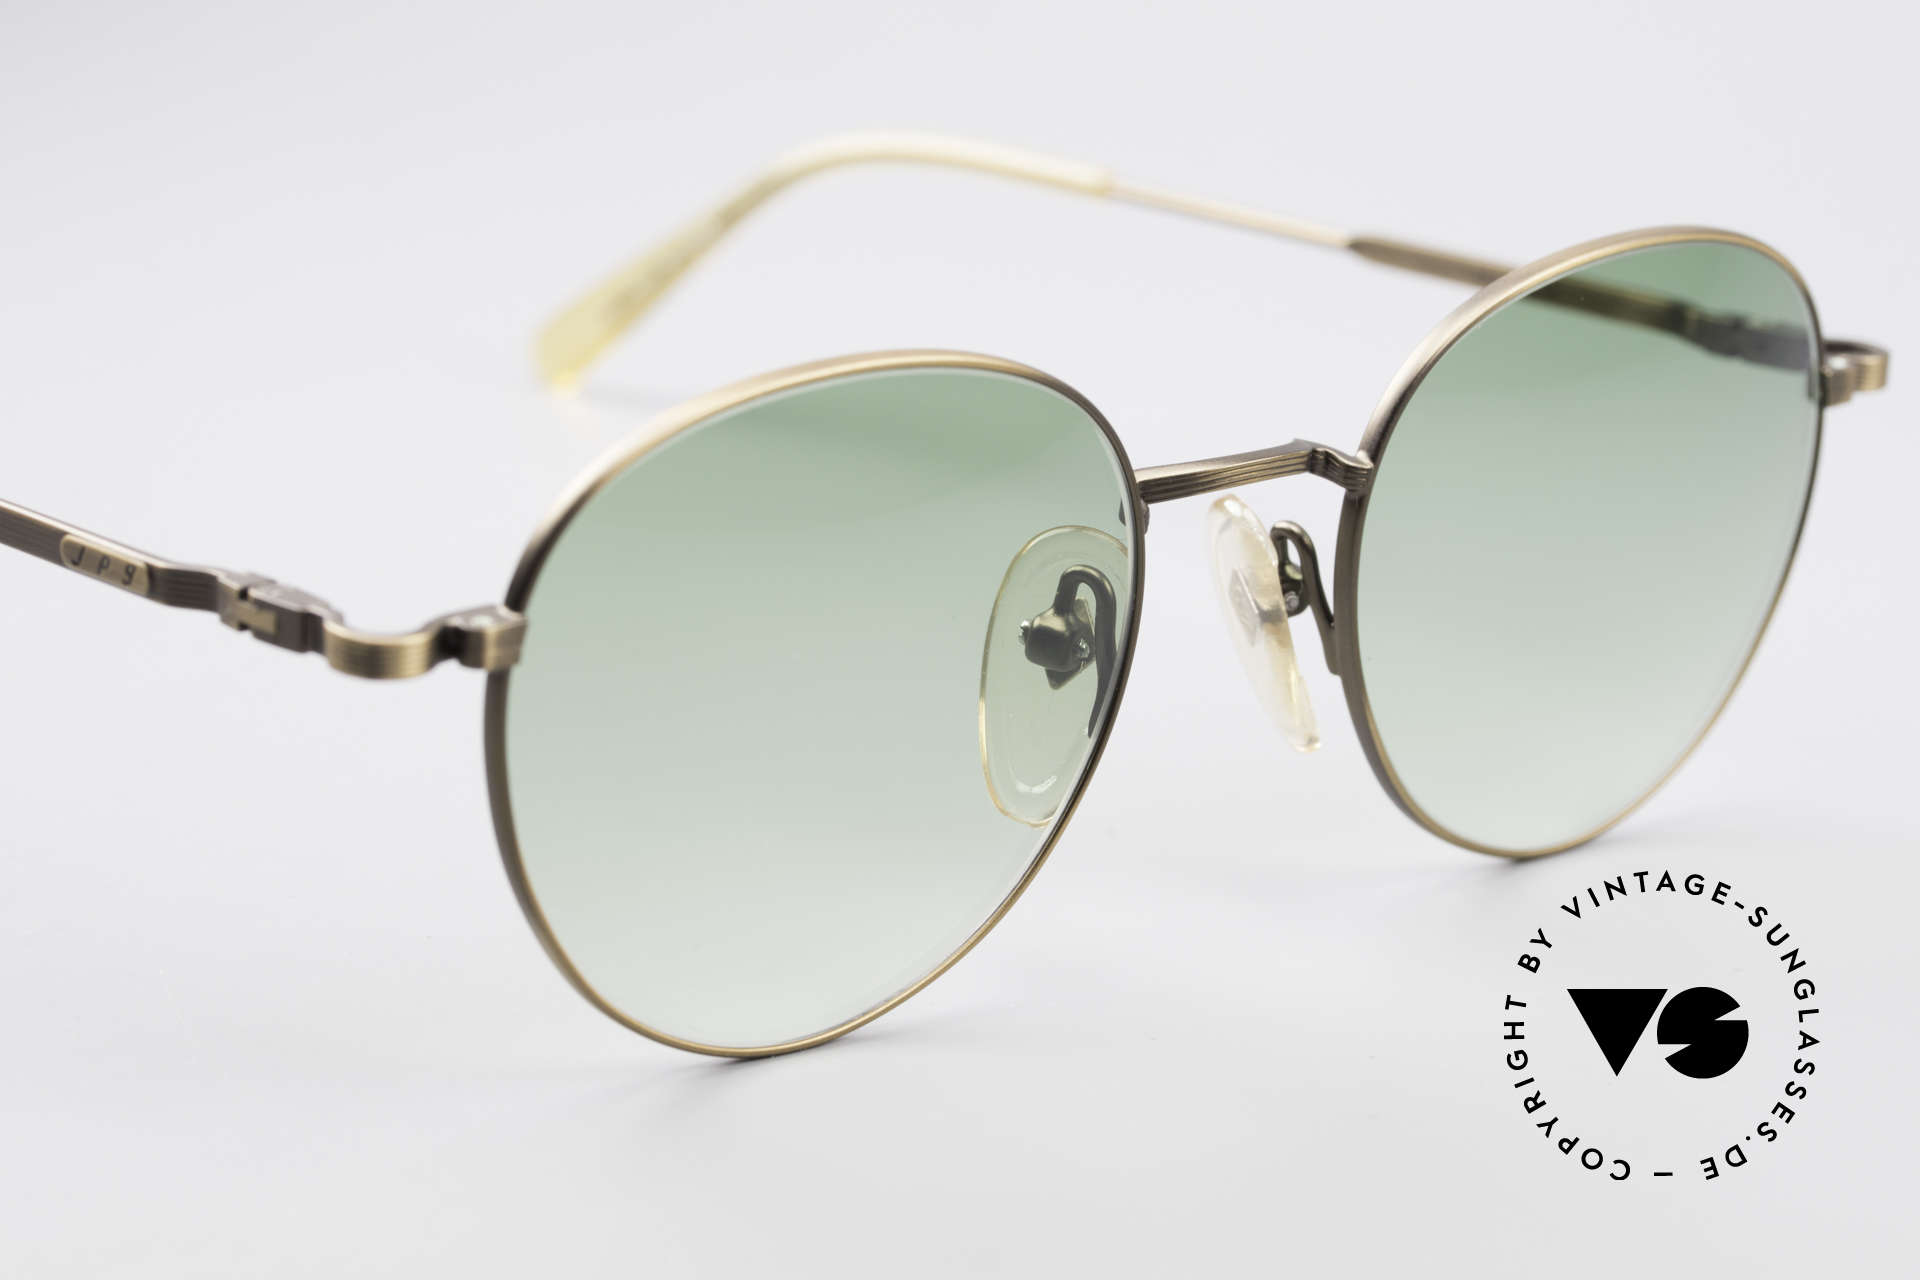 Jean Paul Gaultier 55-1174 Round Designer Sunglasses, a real designer frame in top-notch quality from 1996, Made for Men and Women